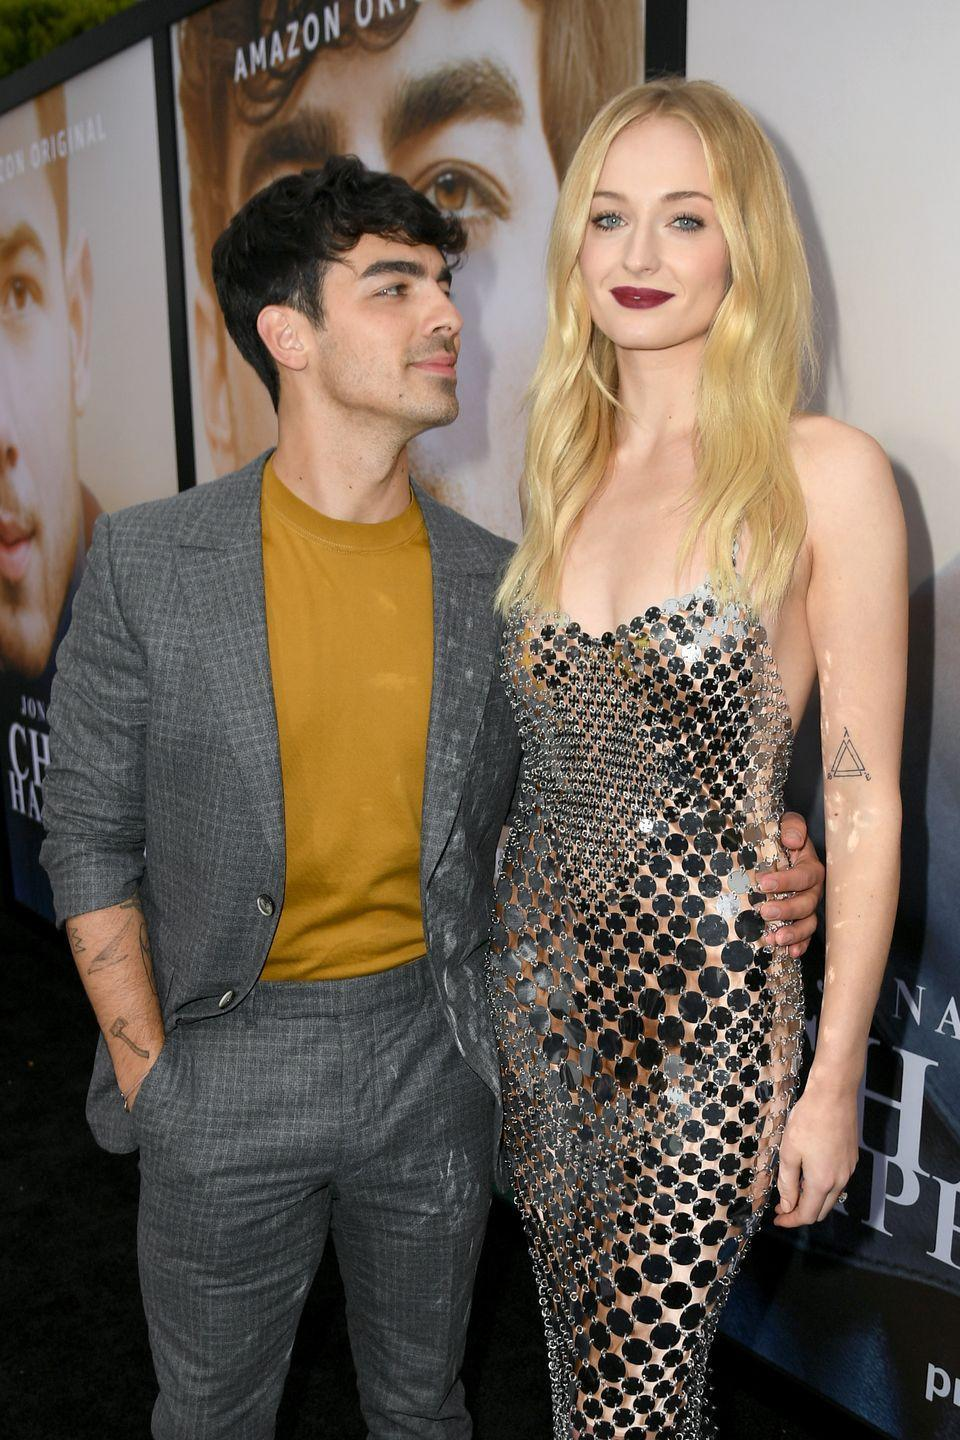 <p>Understandably, Jonas can't keep his eyes off Turner in this dazzling chainmail dress by Paco Rabane at the premiere of the Jonas Brothers documentary 'Chasing Happiness'.</p>